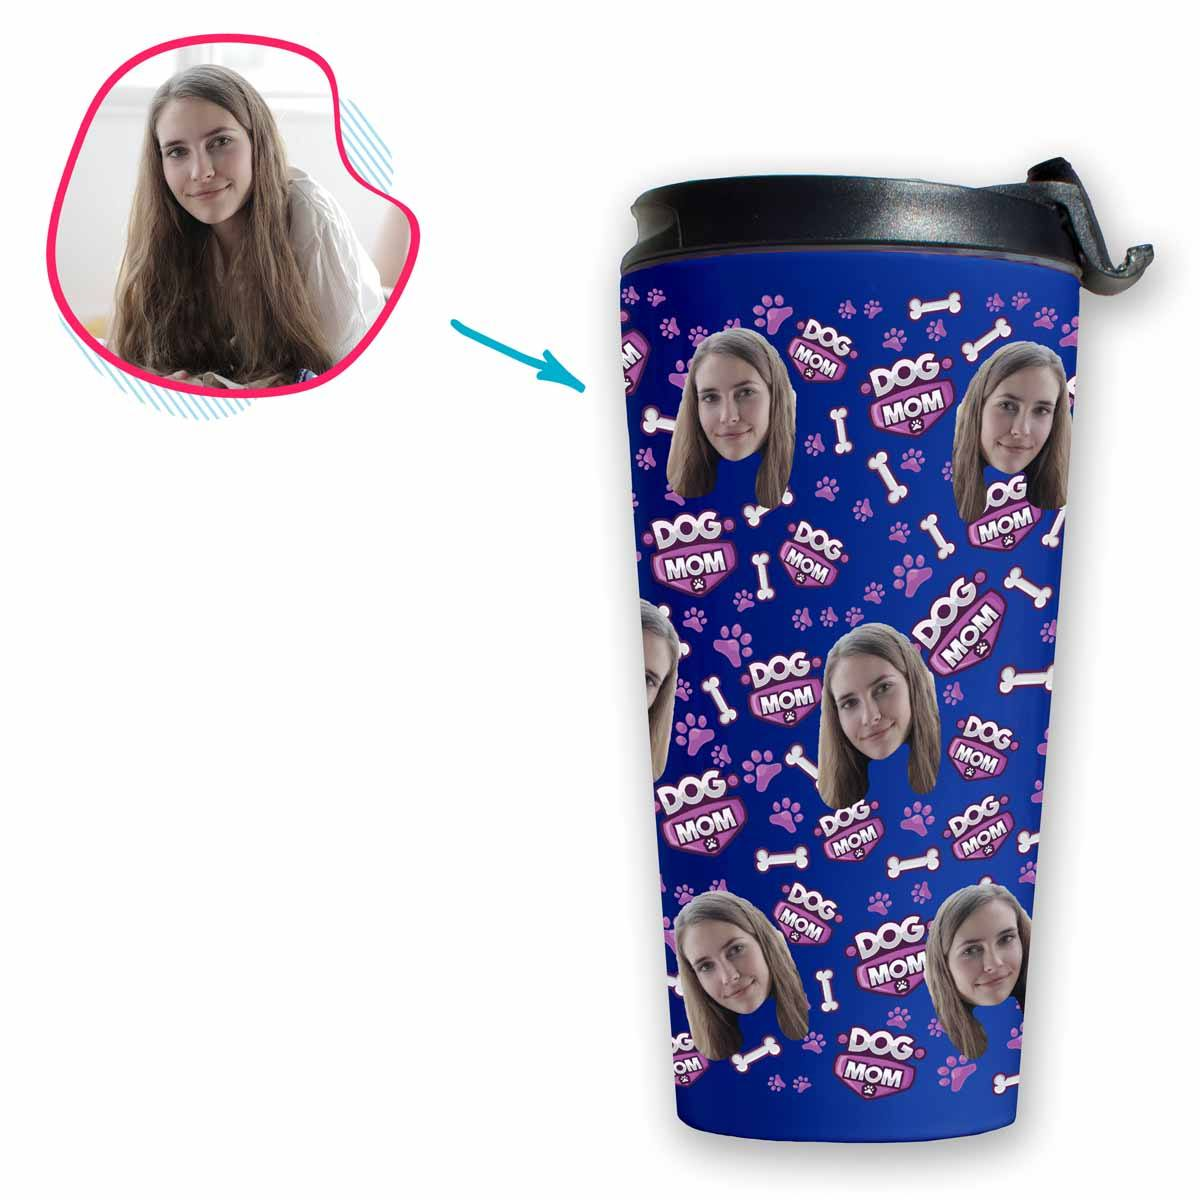 darkblue Dog Mom travel mug personalized with photo of face printed on it